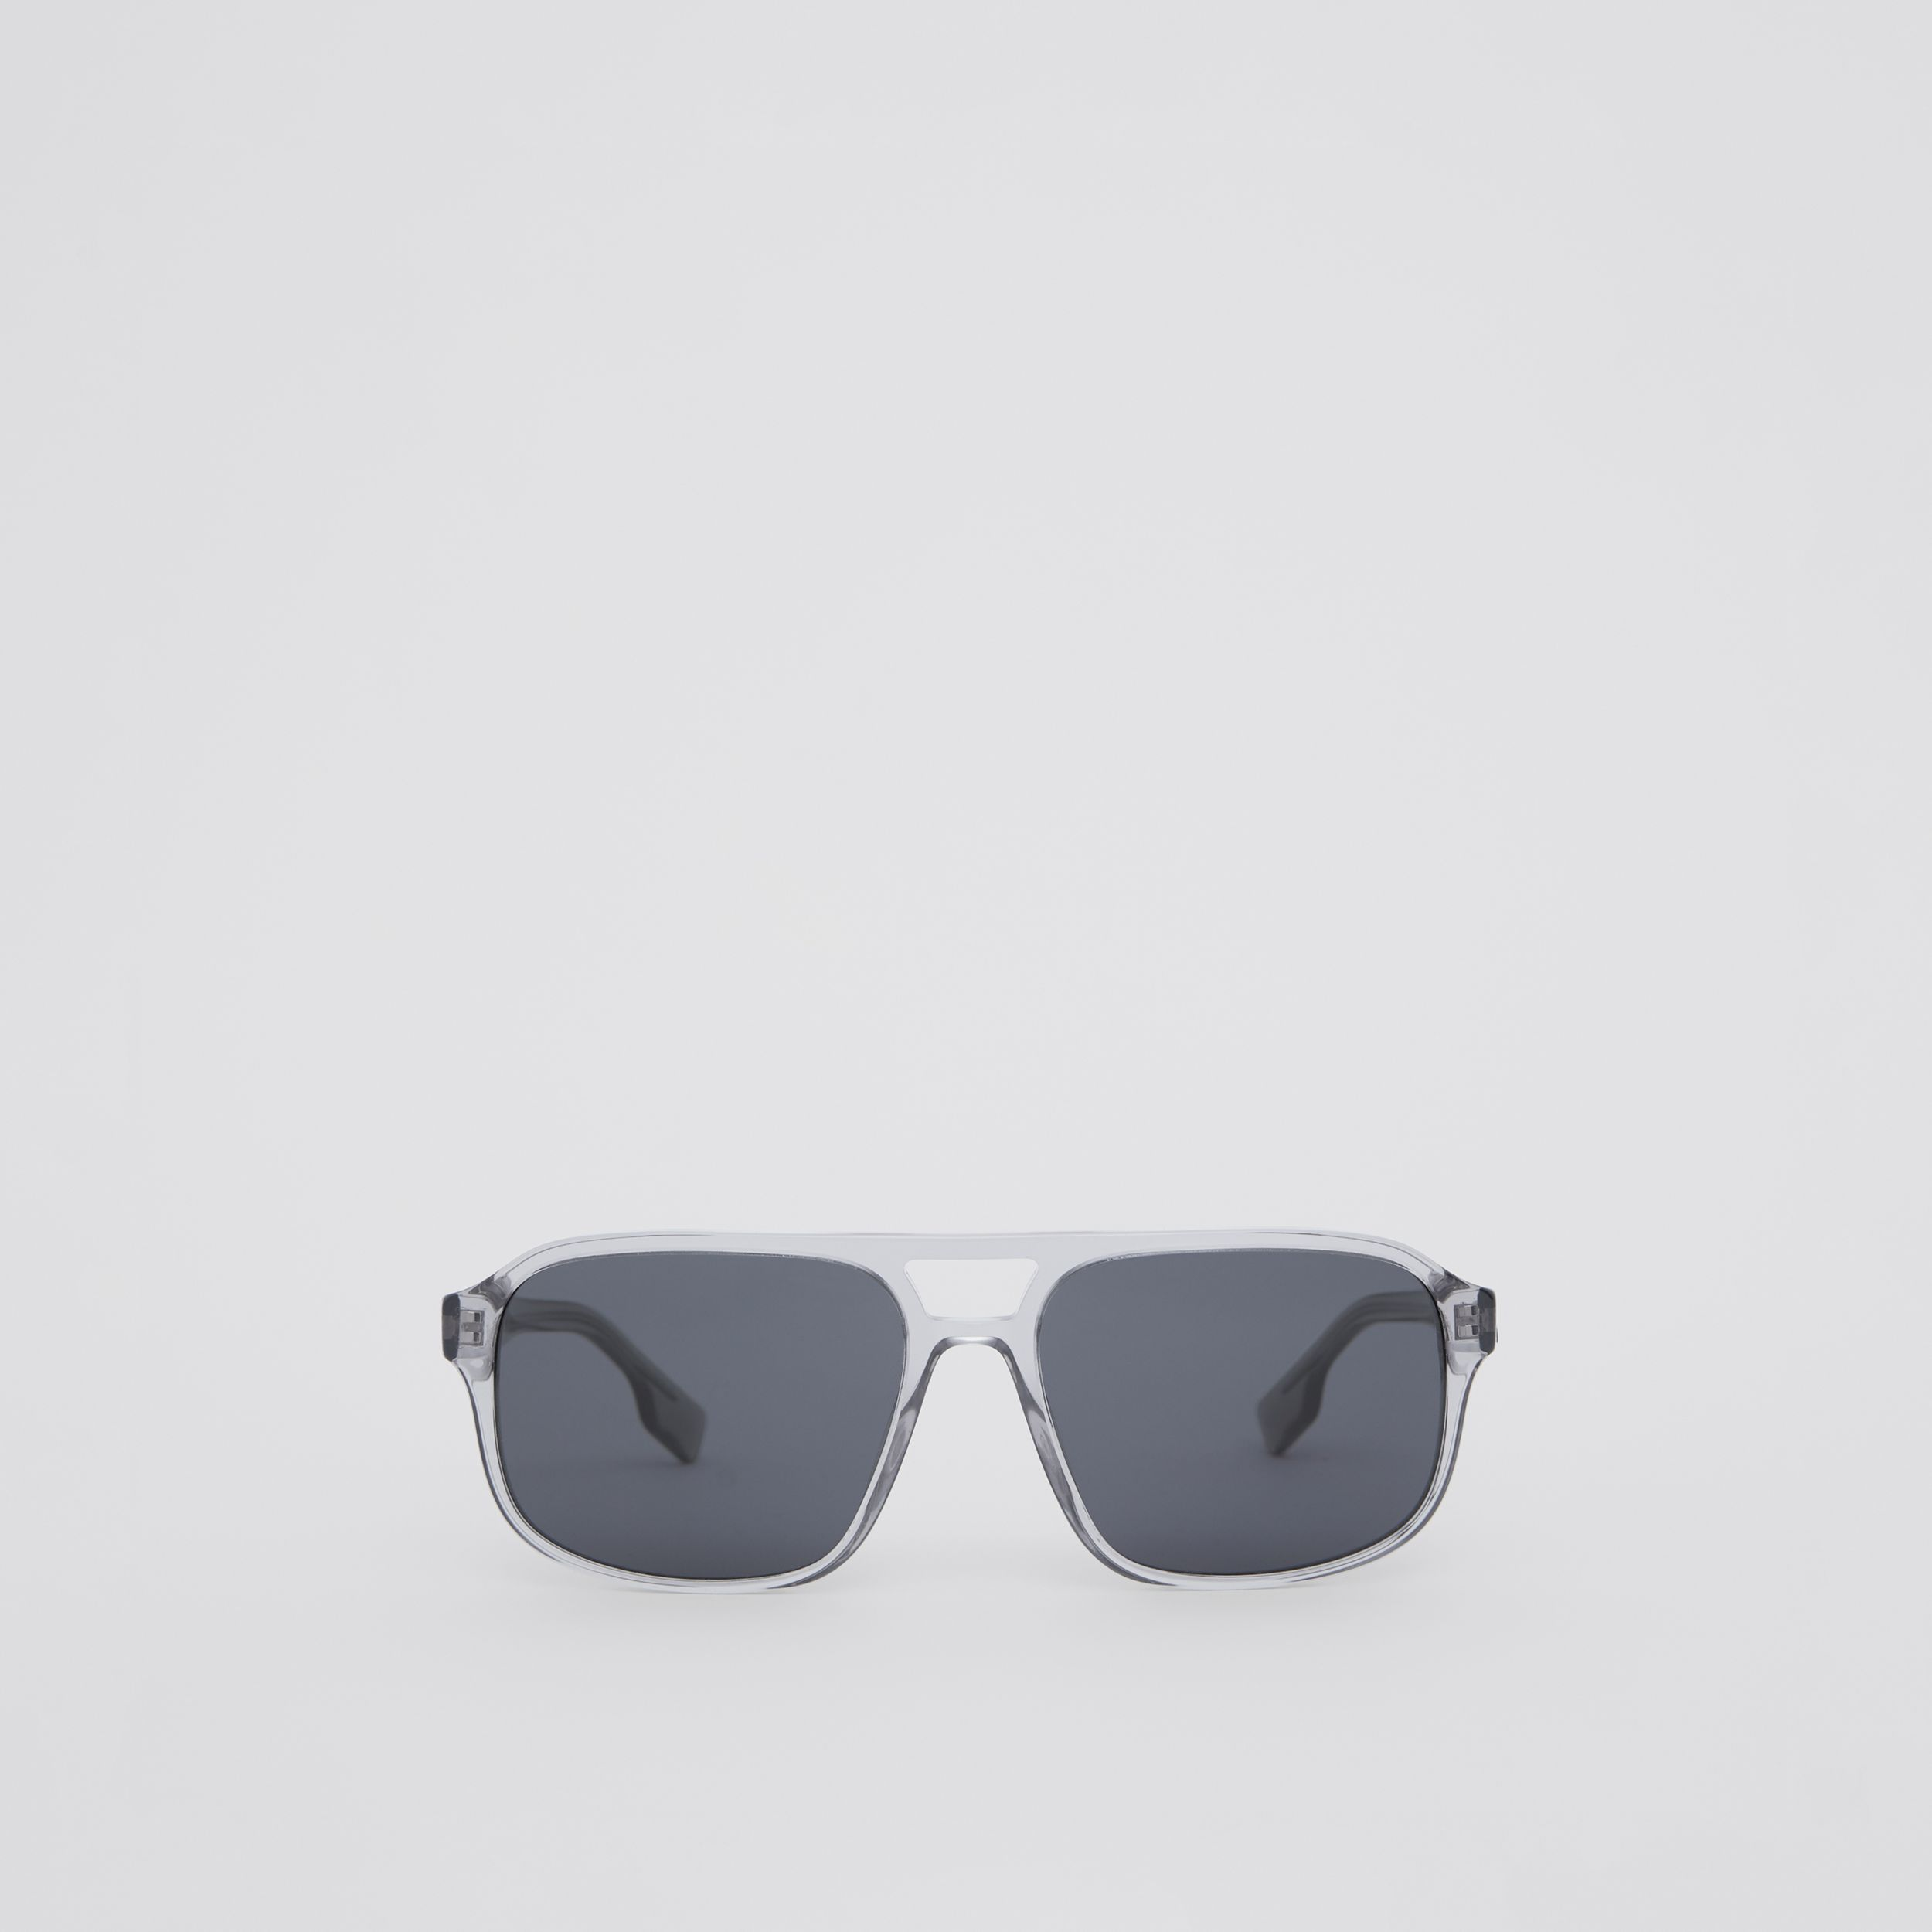 Square Frame Sunglasses in Grey - Men | Burberry - 1